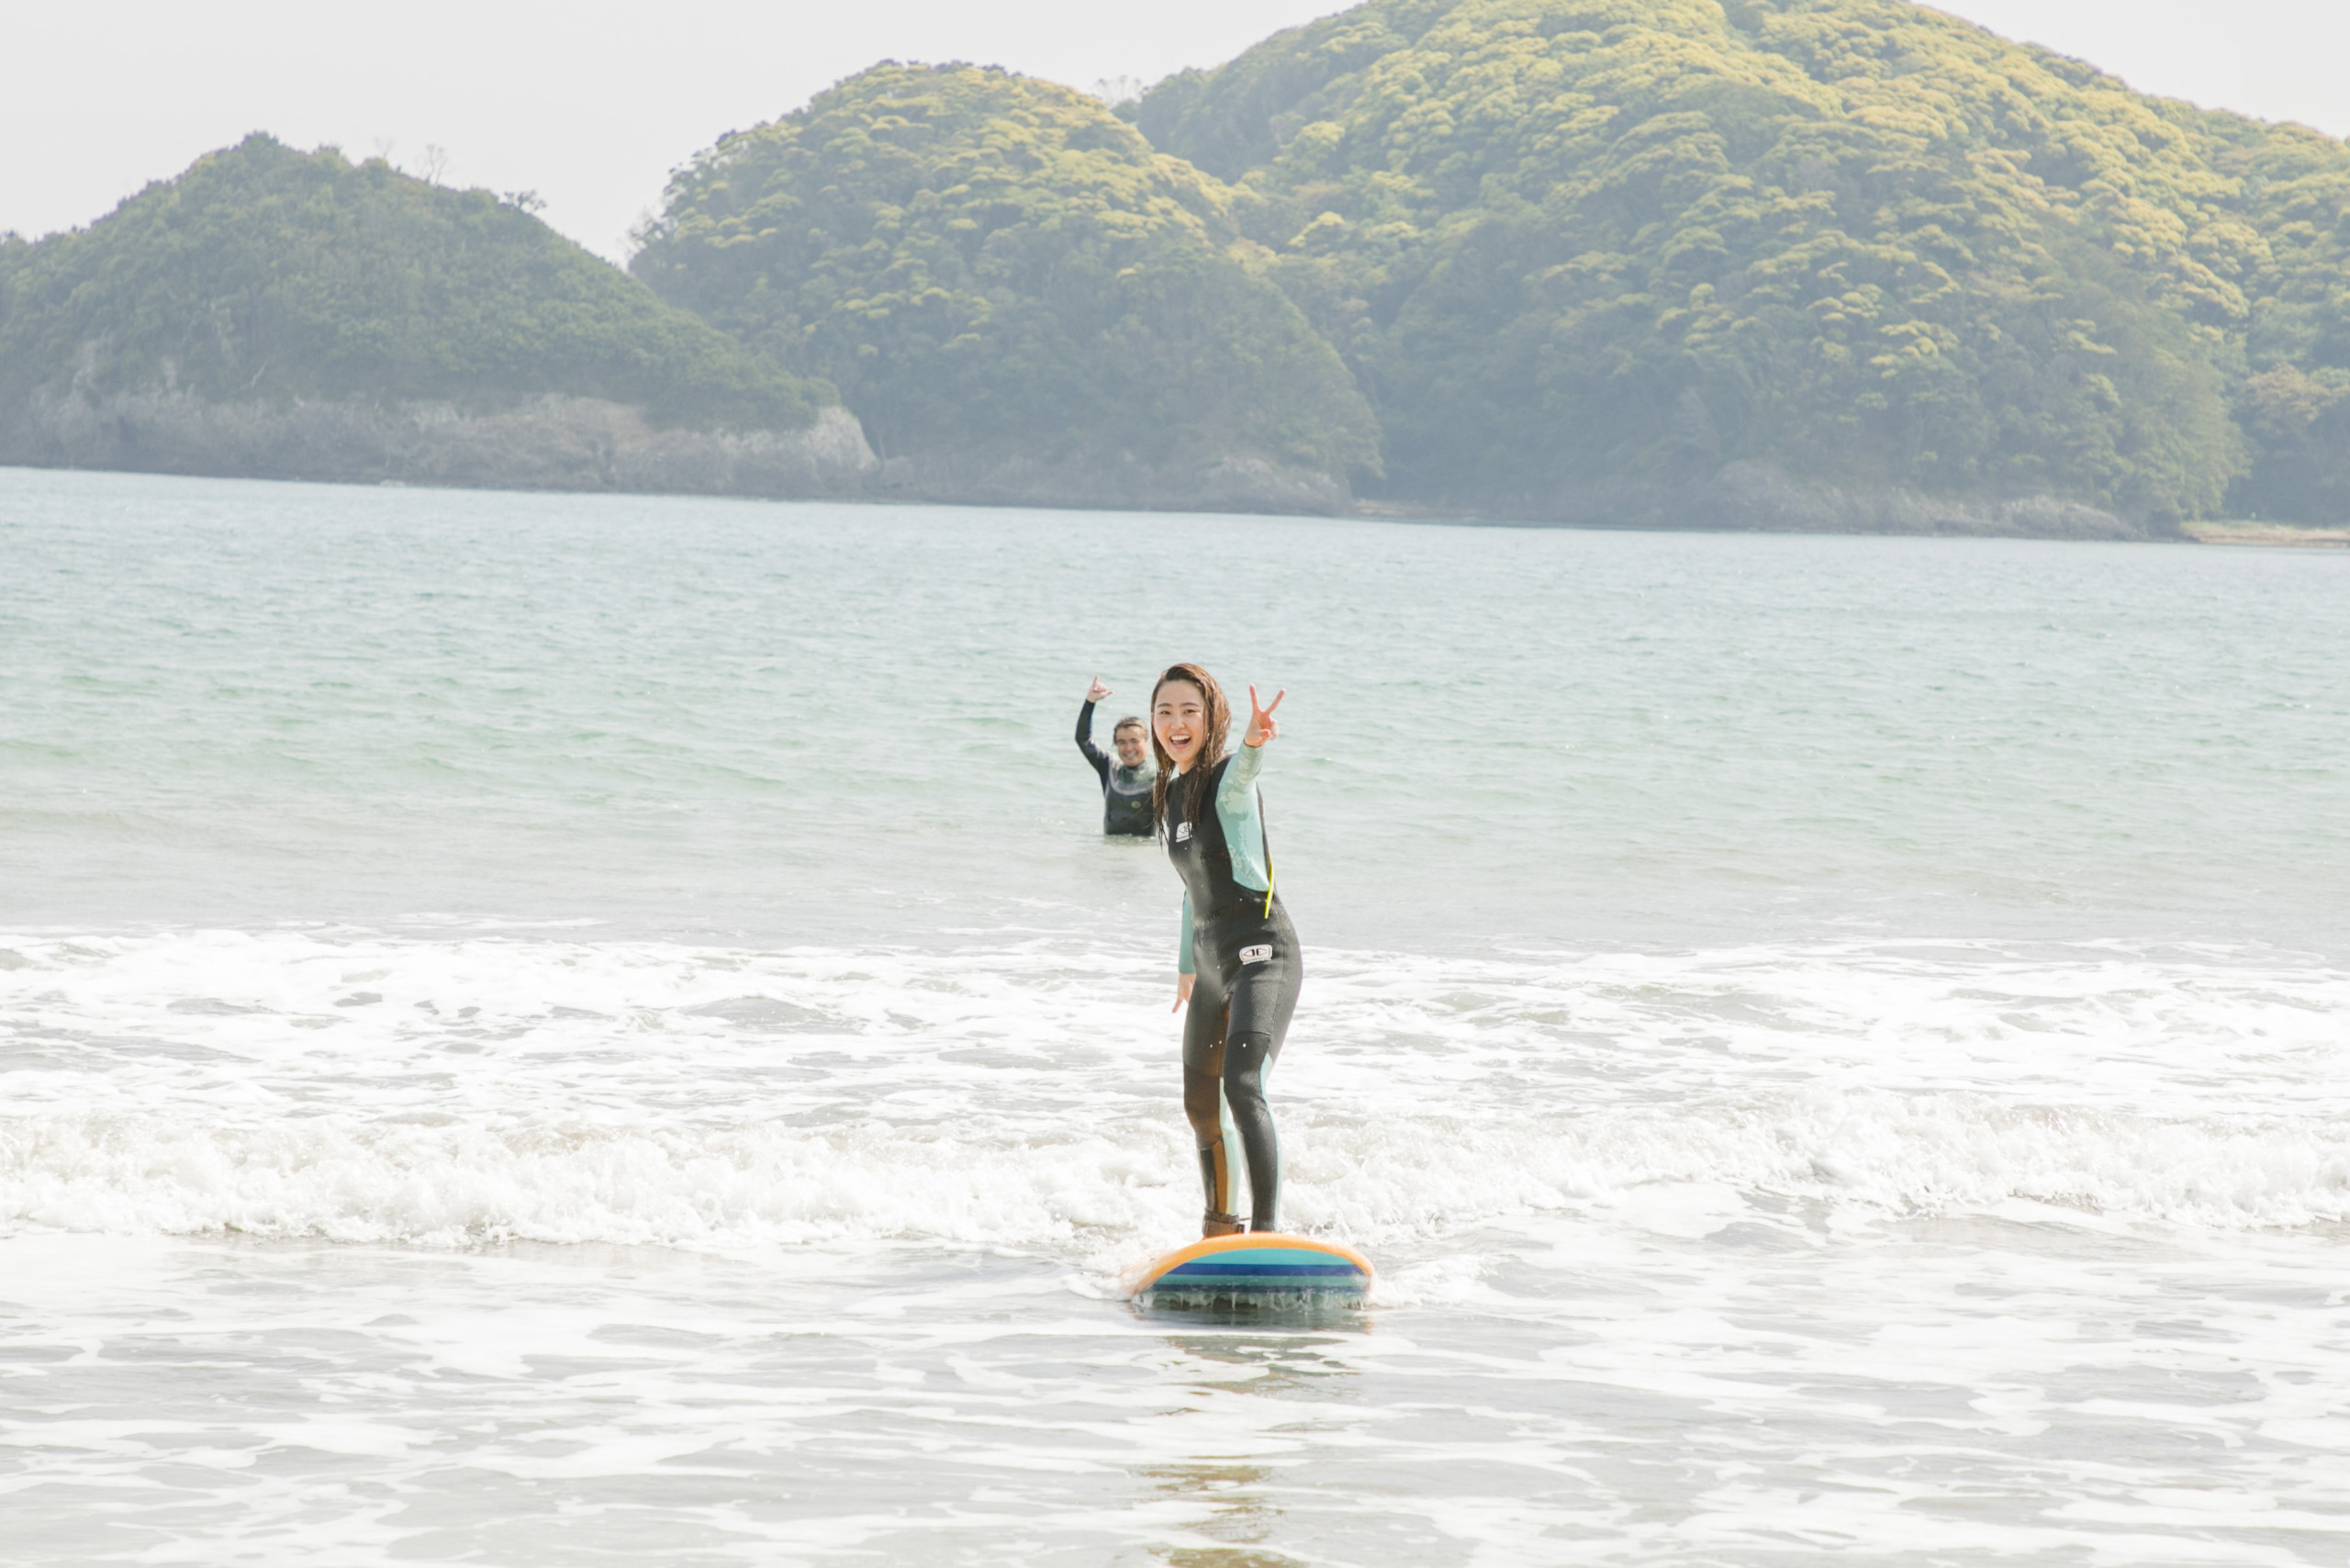 surfing_lesson